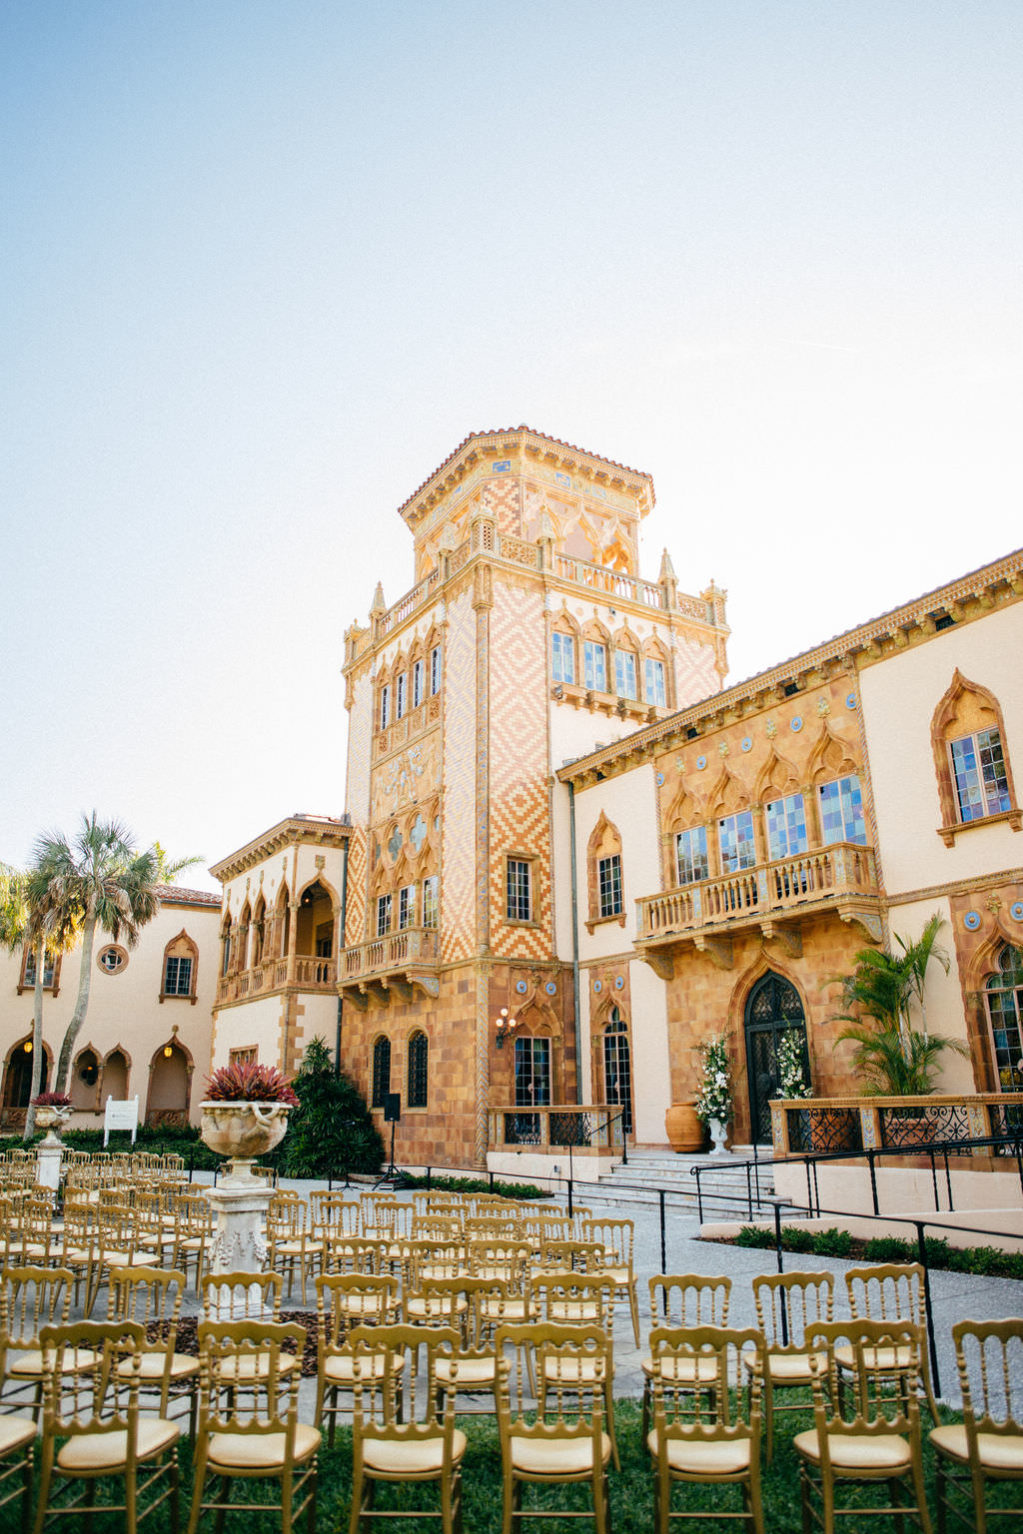 Sarasota Wedding Ceremony | Historic Sarasota Waterfront Wedding Ceremony at Venue Ca d'Zan at The Ringling Museum | Tampa Bay Wedding Planner NK Productions